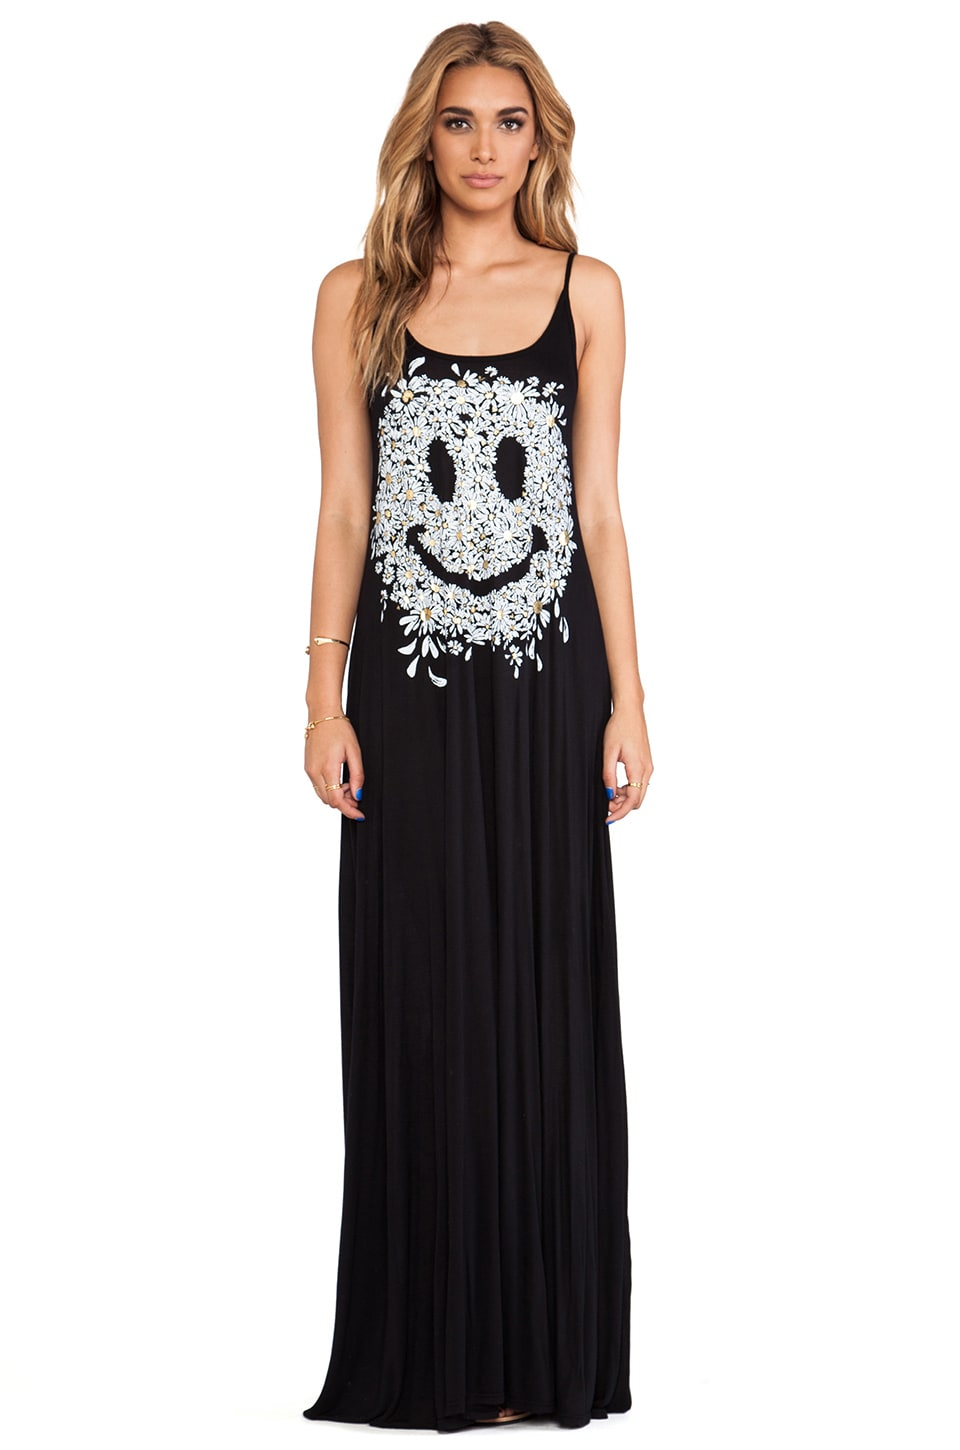 Lauren Moshi Lex Foil Daisy Happy Face Deep Back Maxi Dress in Black